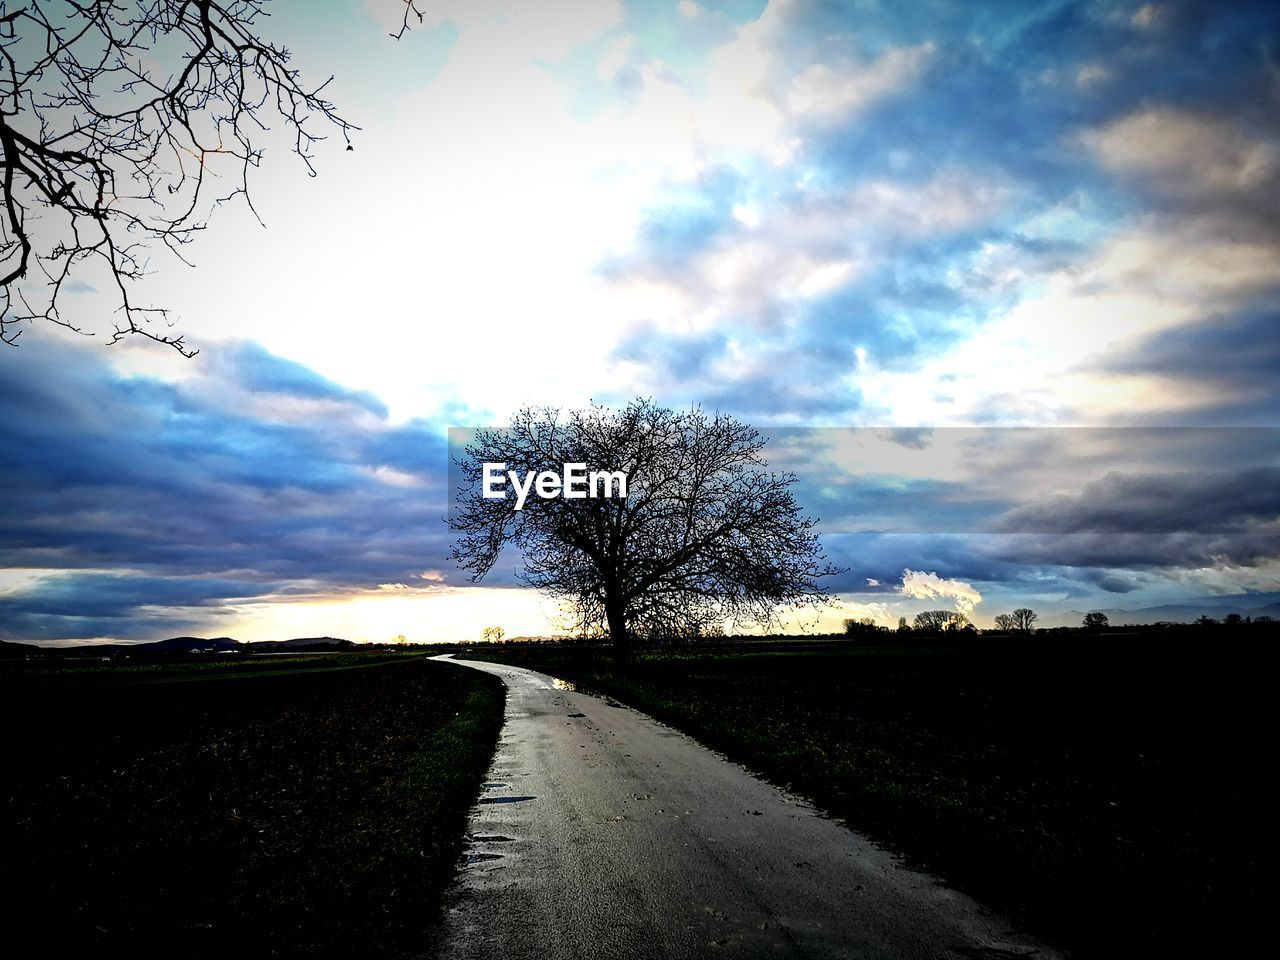 sky, cloud - sky, tree, road, direction, the way forward, plant, transportation, no people, beauty in nature, tranquility, nature, bare tree, landscape, tranquil scene, field, environment, diminishing perspective, scenics - nature, land, outdoors, long